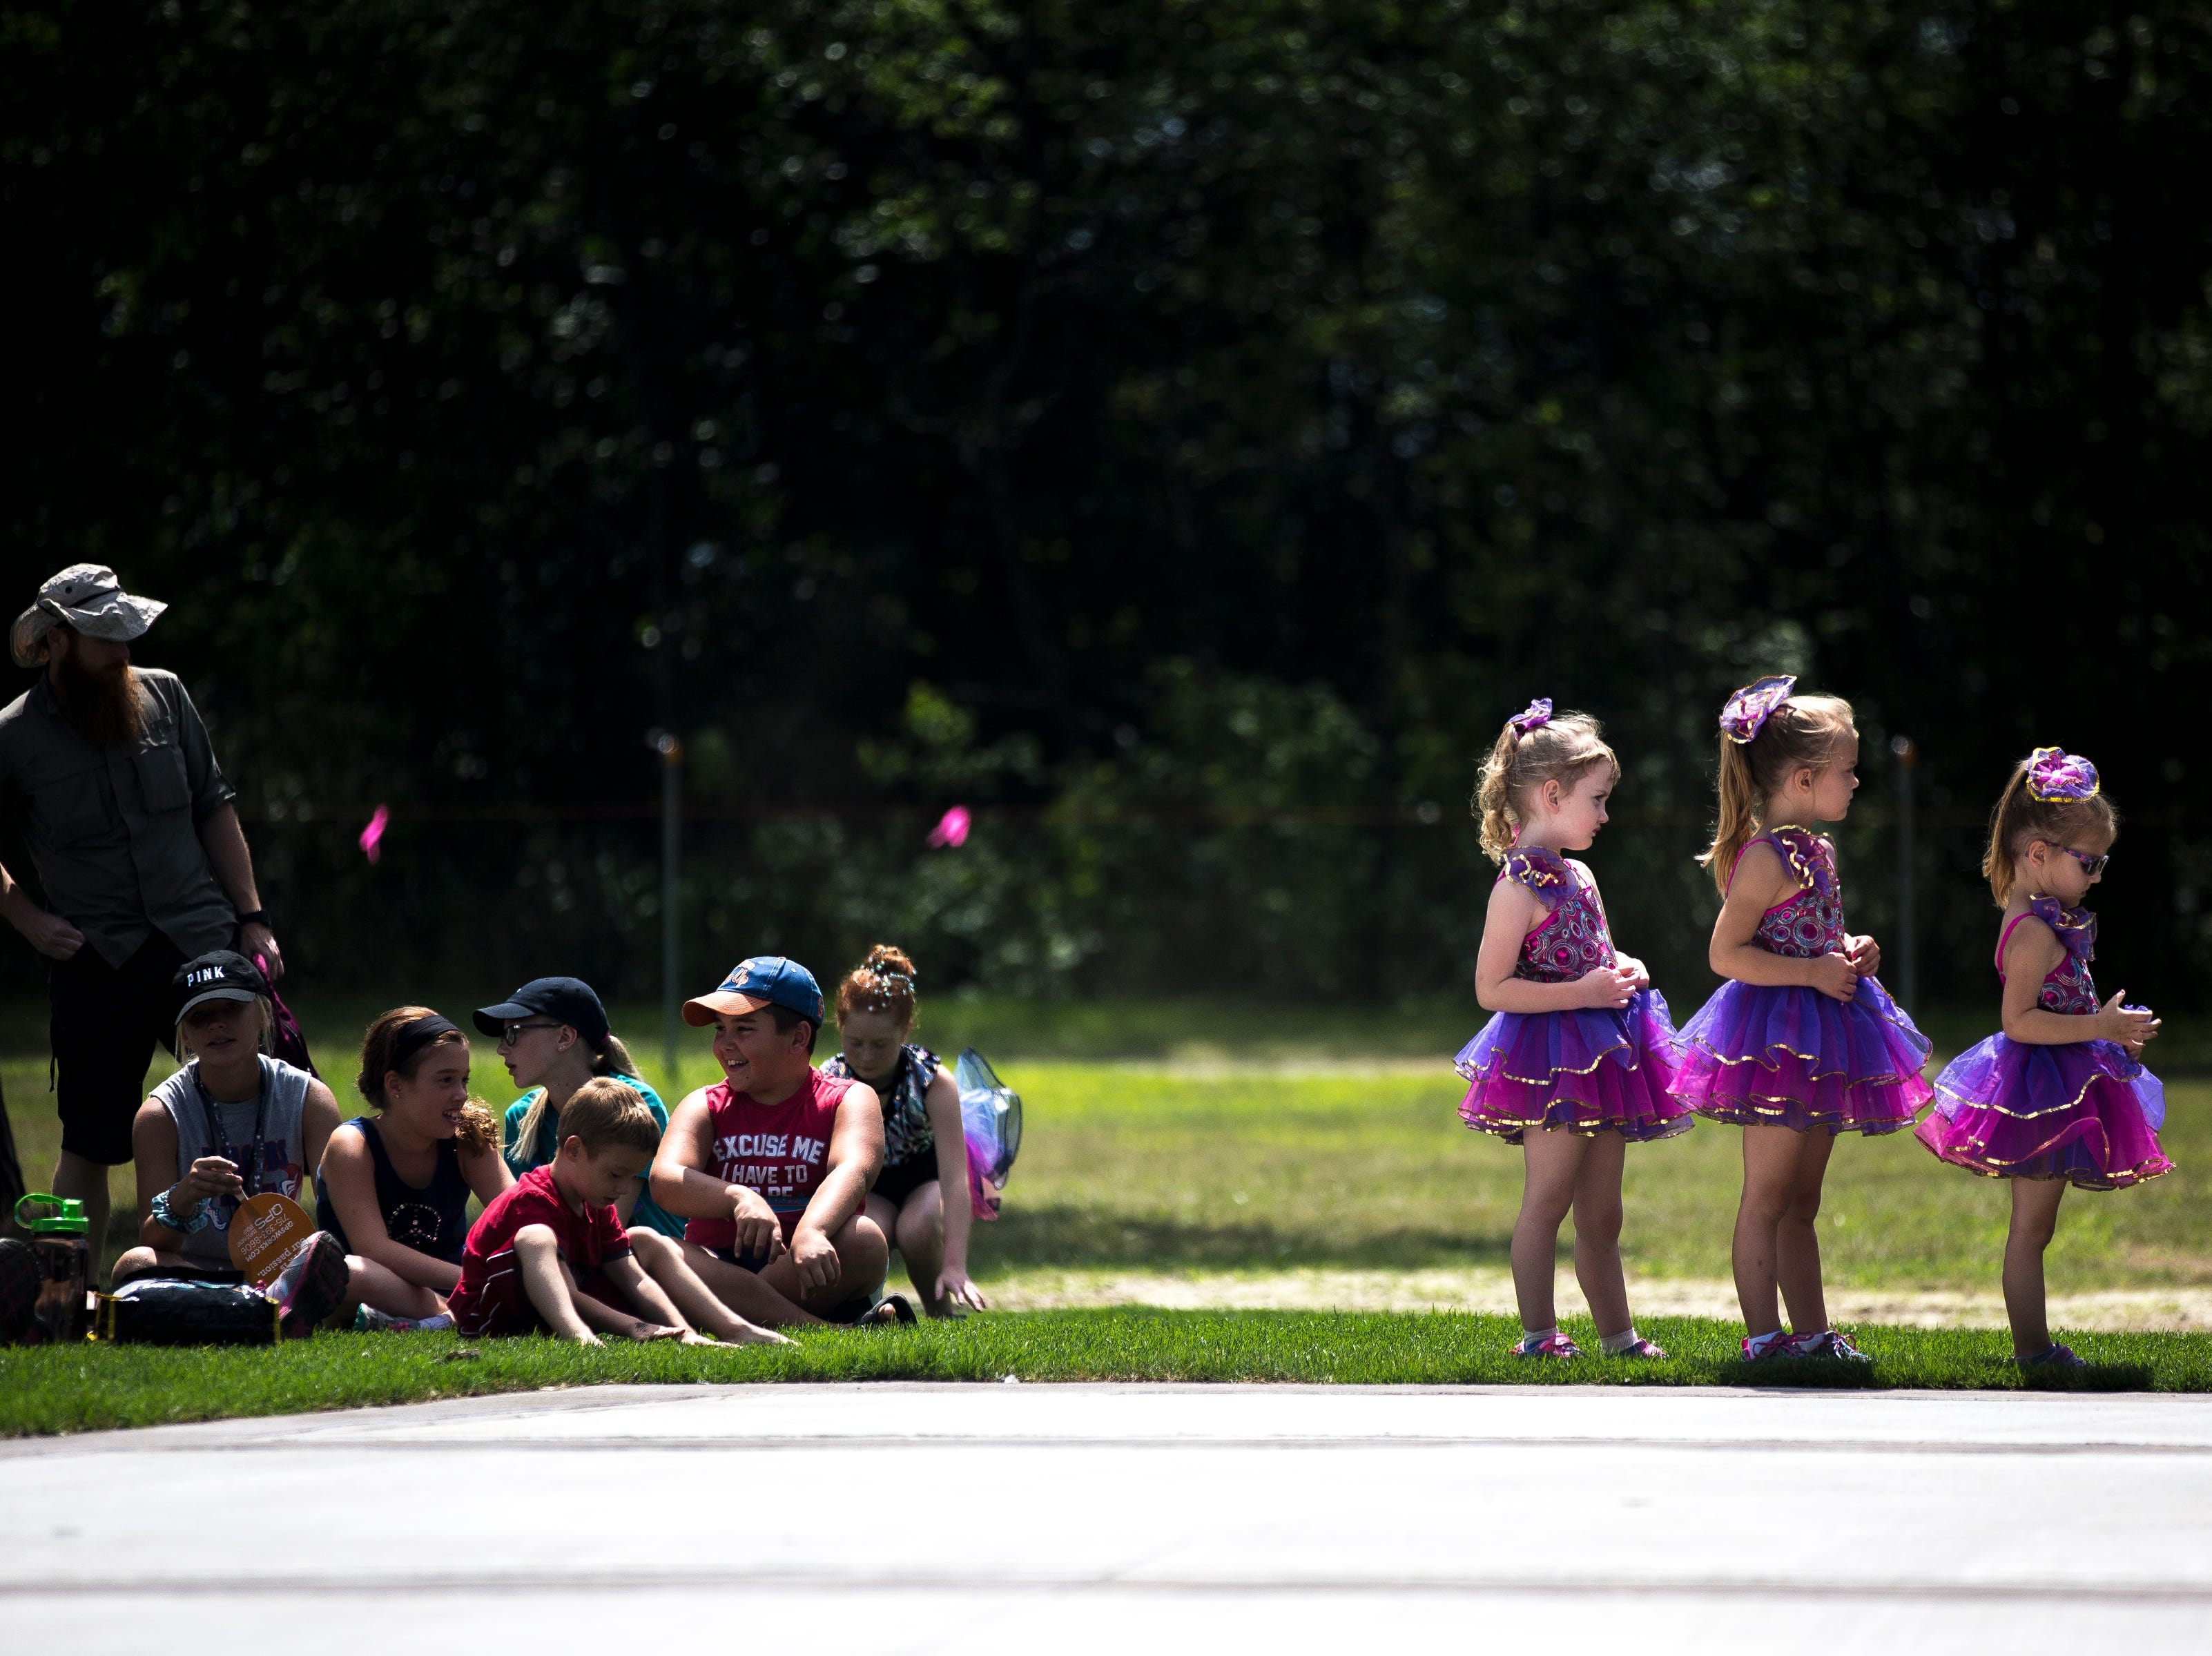 Dancers from Dance Dynamics prepare to take the stage during Celebrate Plover at Lake Pacawa Park in Plover, Wis., July 28, 2018.